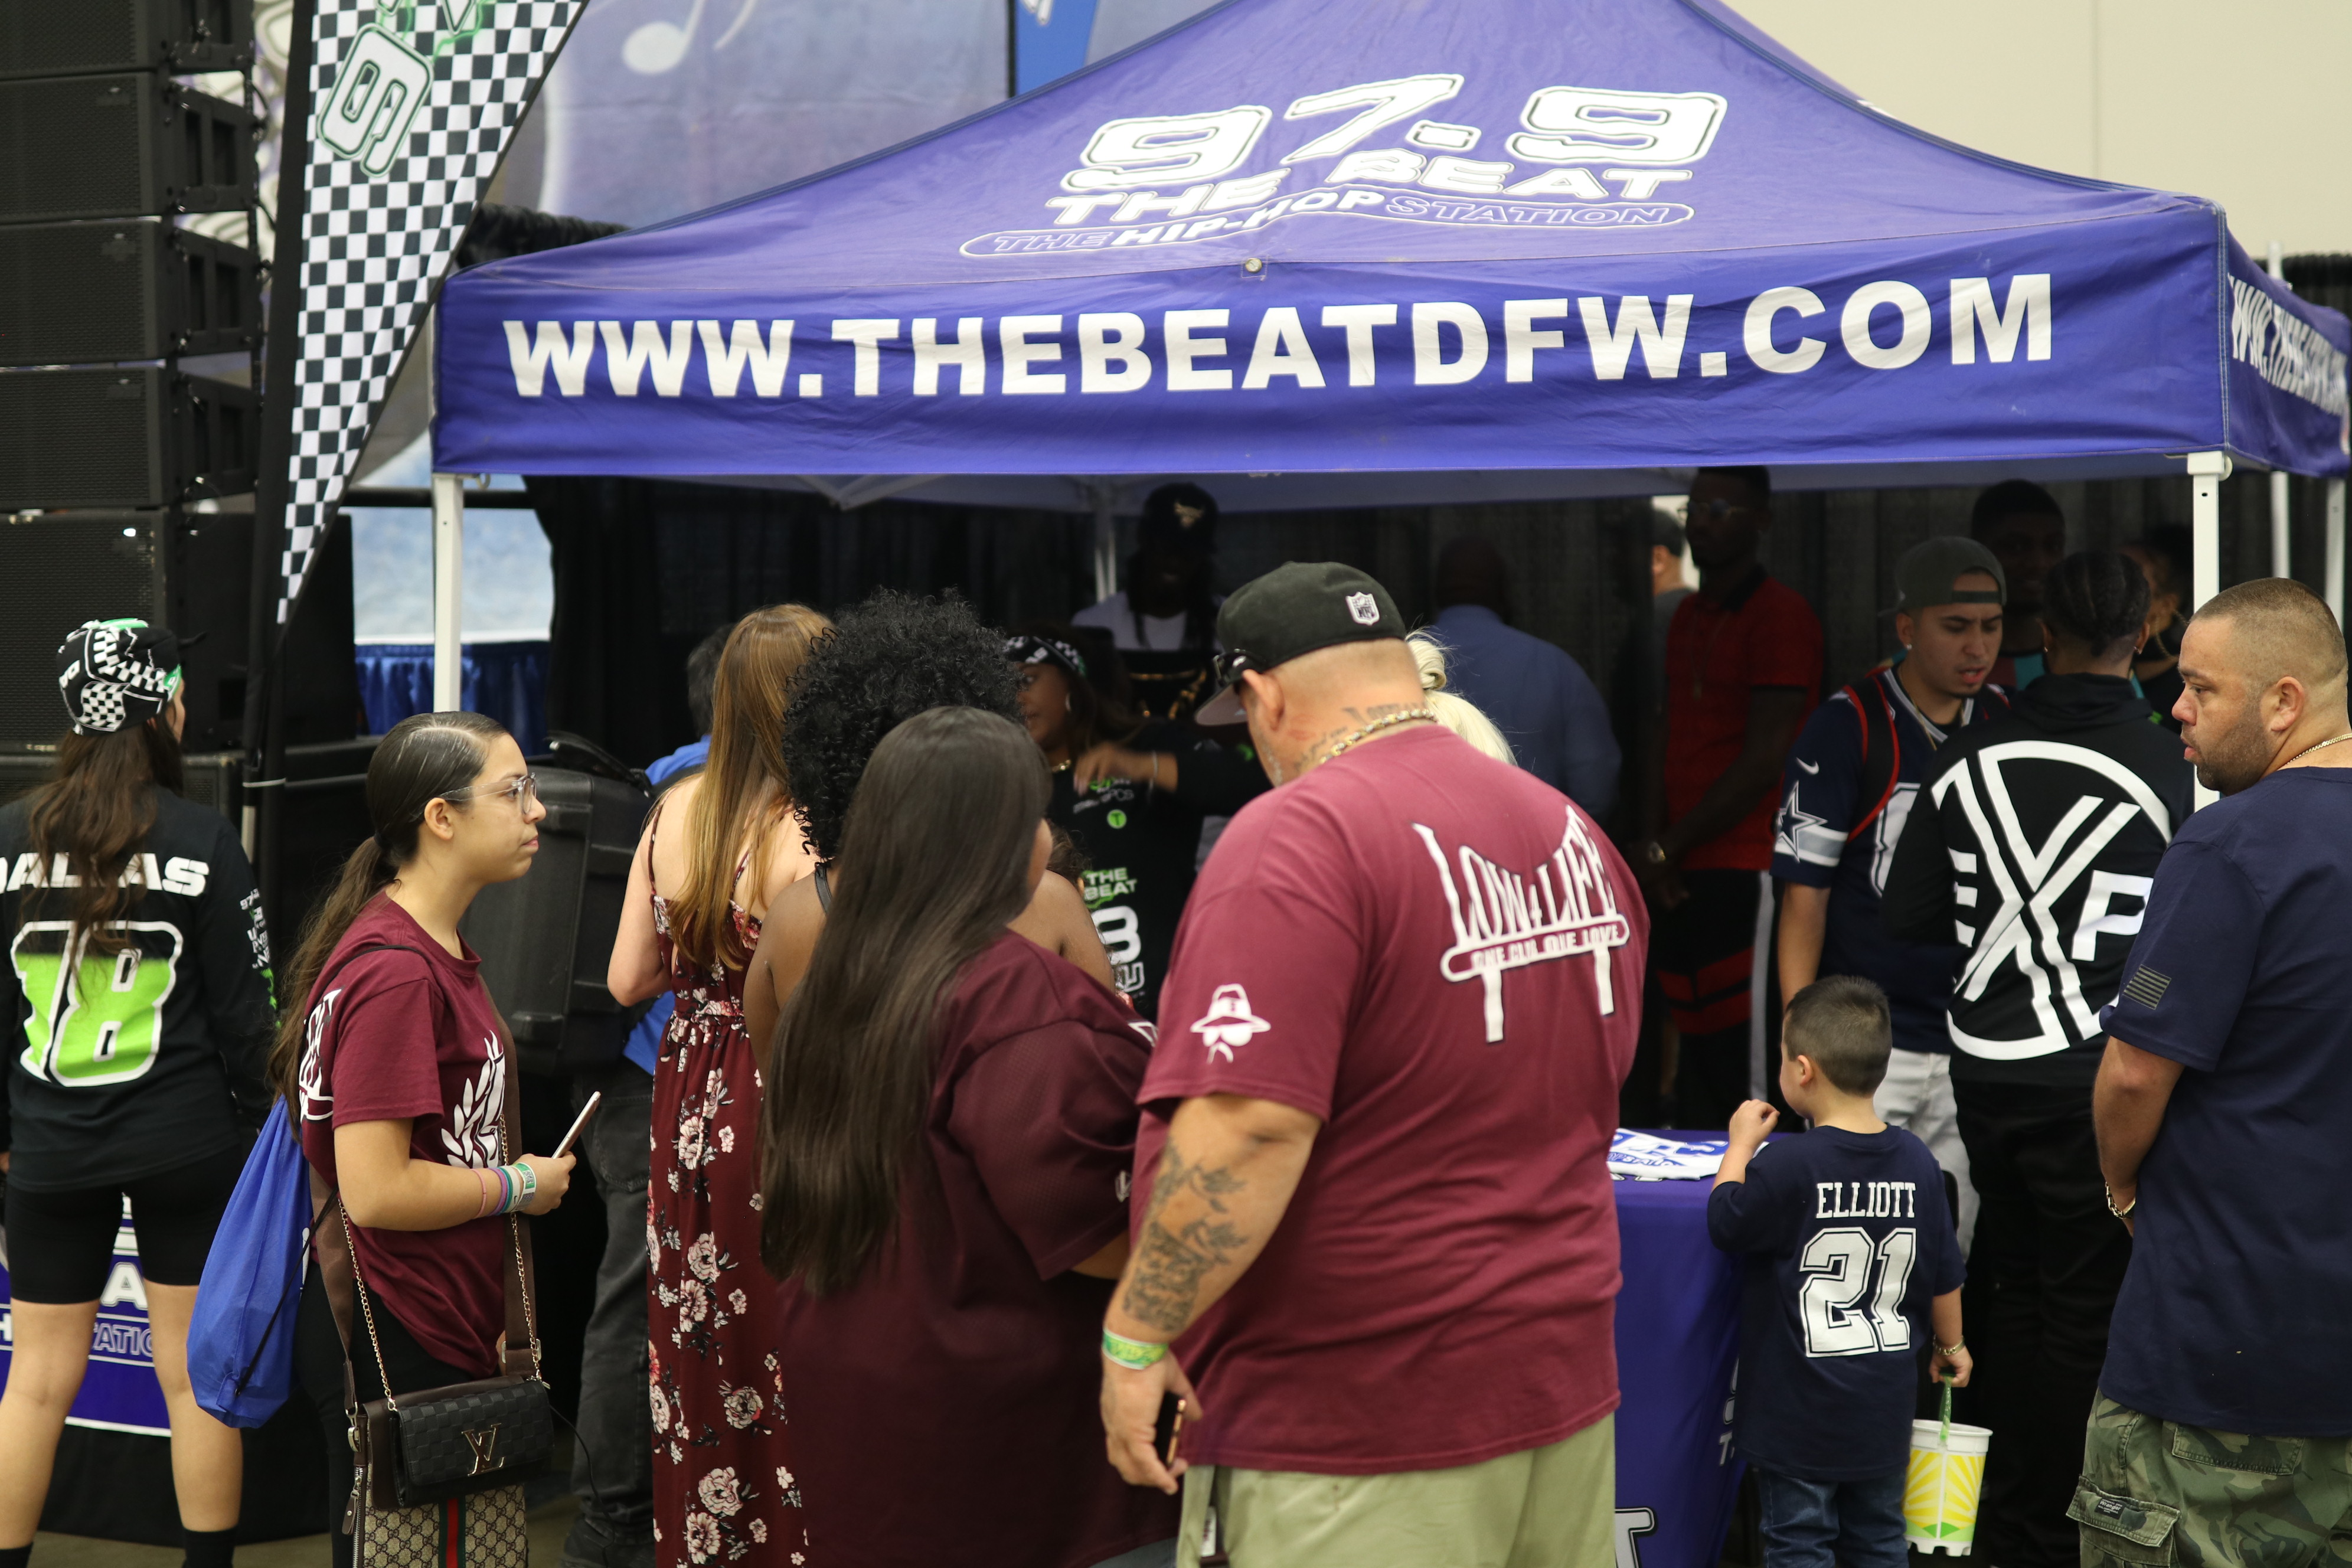 #979CarShow 2018 Activation Area (PHOTOS)